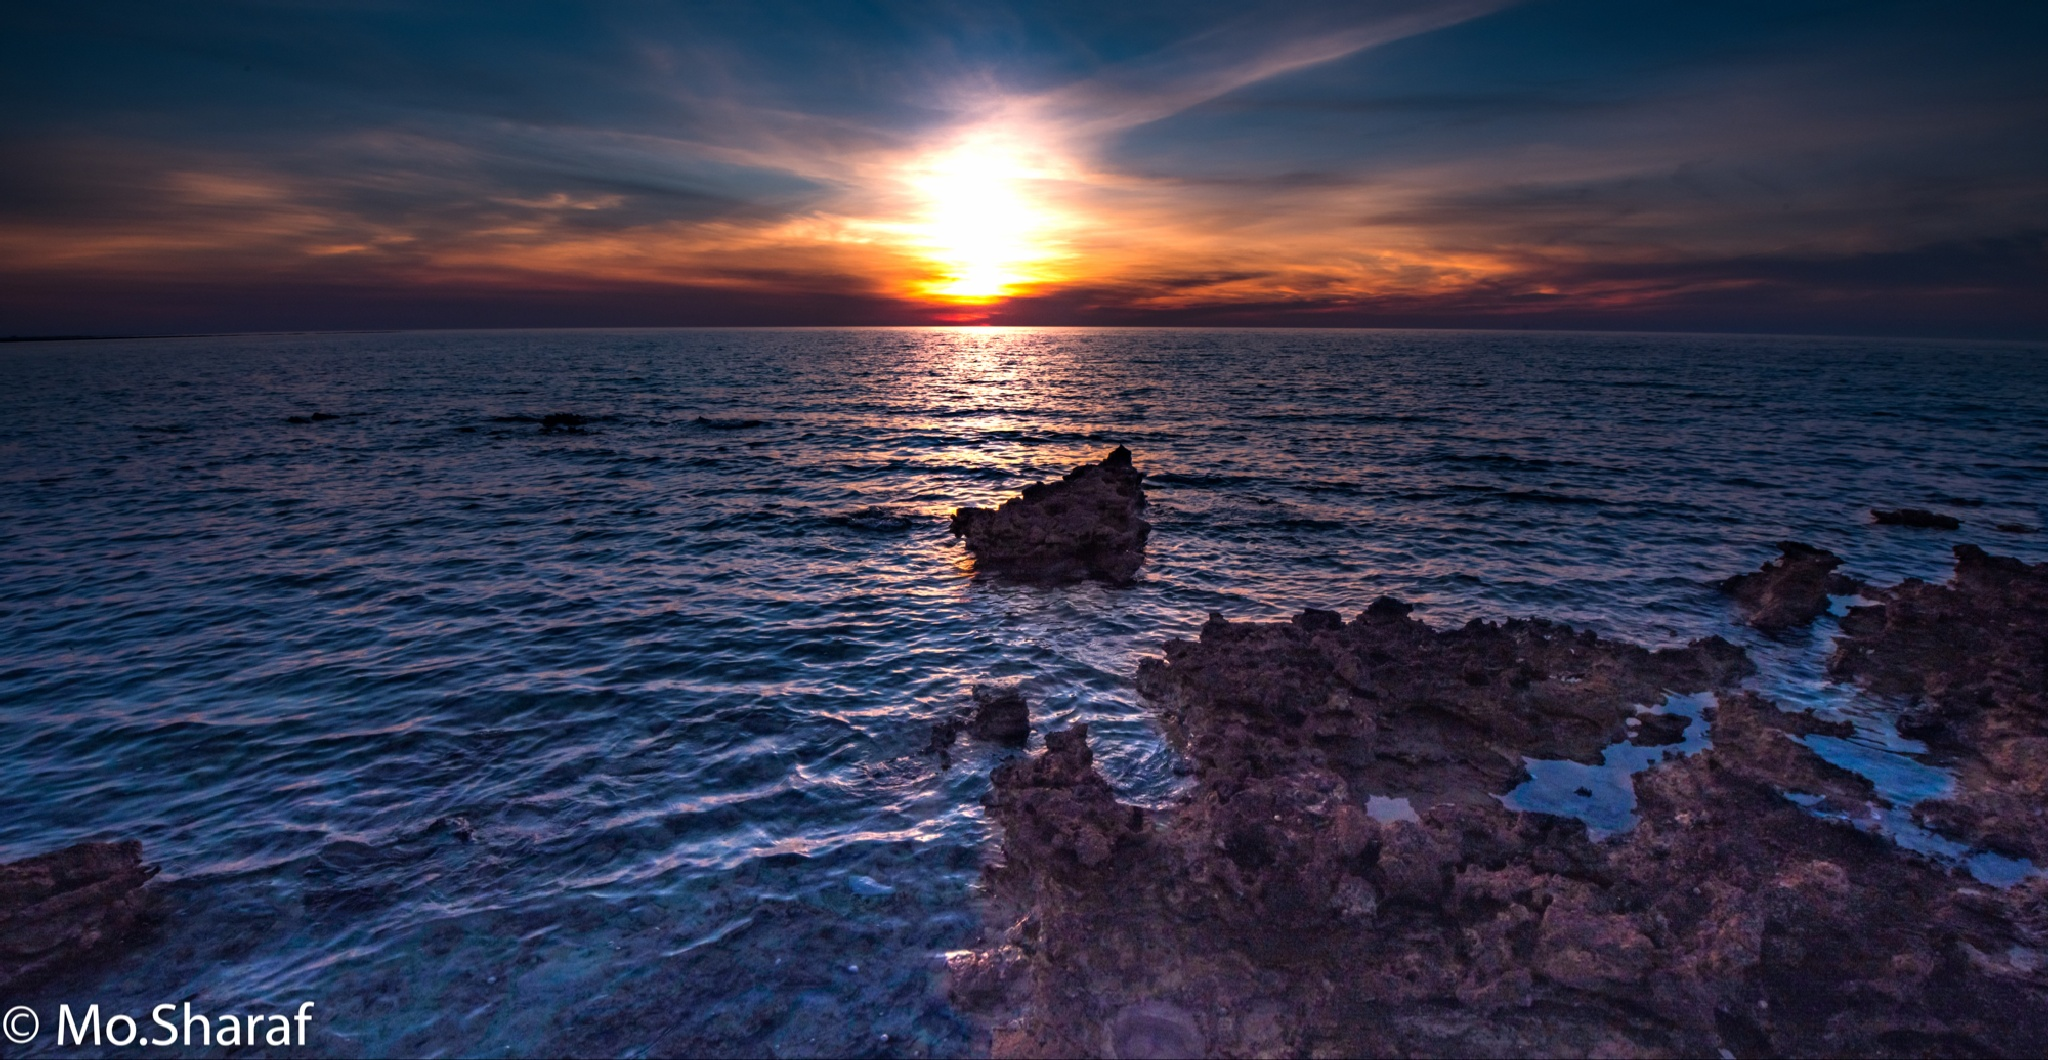 Strong sunset by ¥-Mo.Sharaf-¥